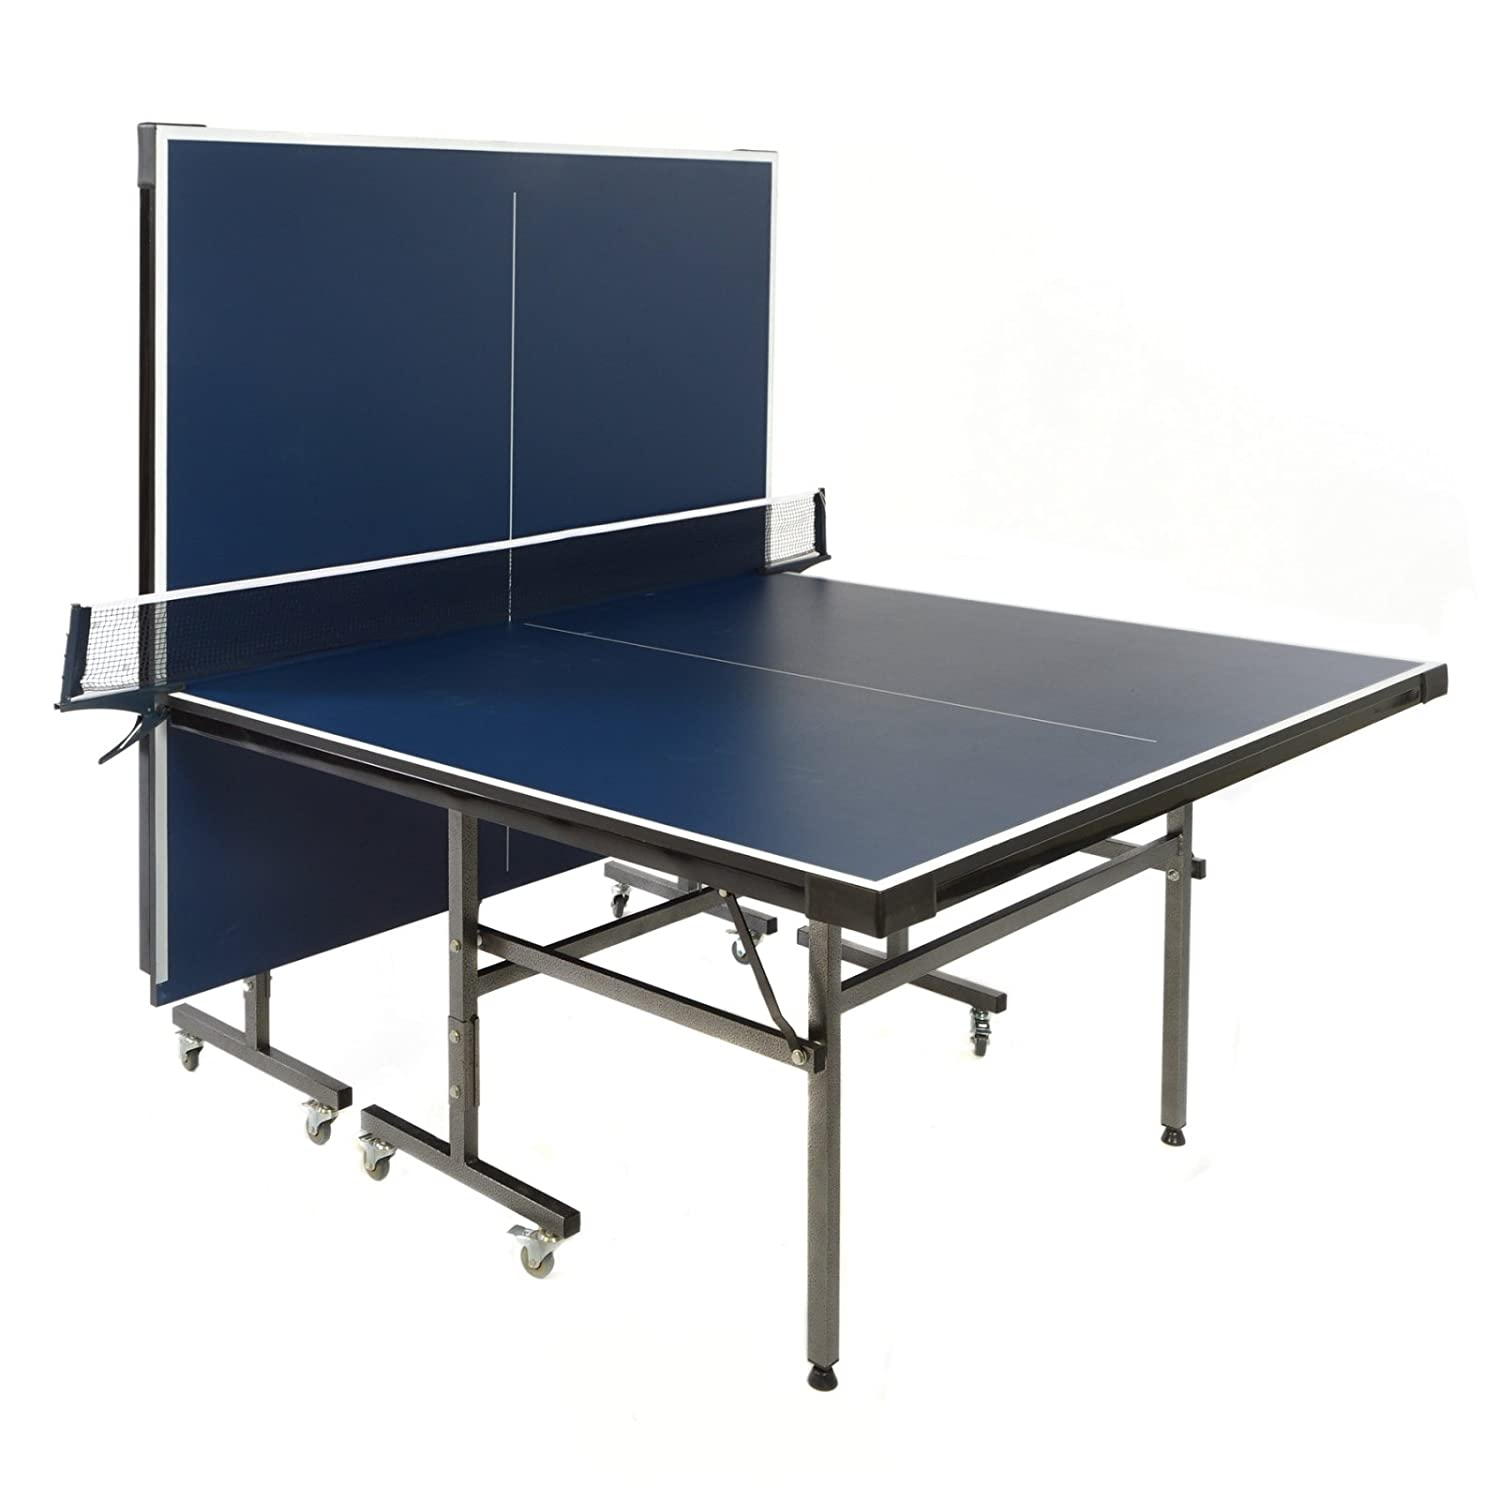 Amazon.com : Lion Sports Aurora Table Tennis Table (2 Piece) : Lion Sports  Ping : Sports U0026 Outdoors